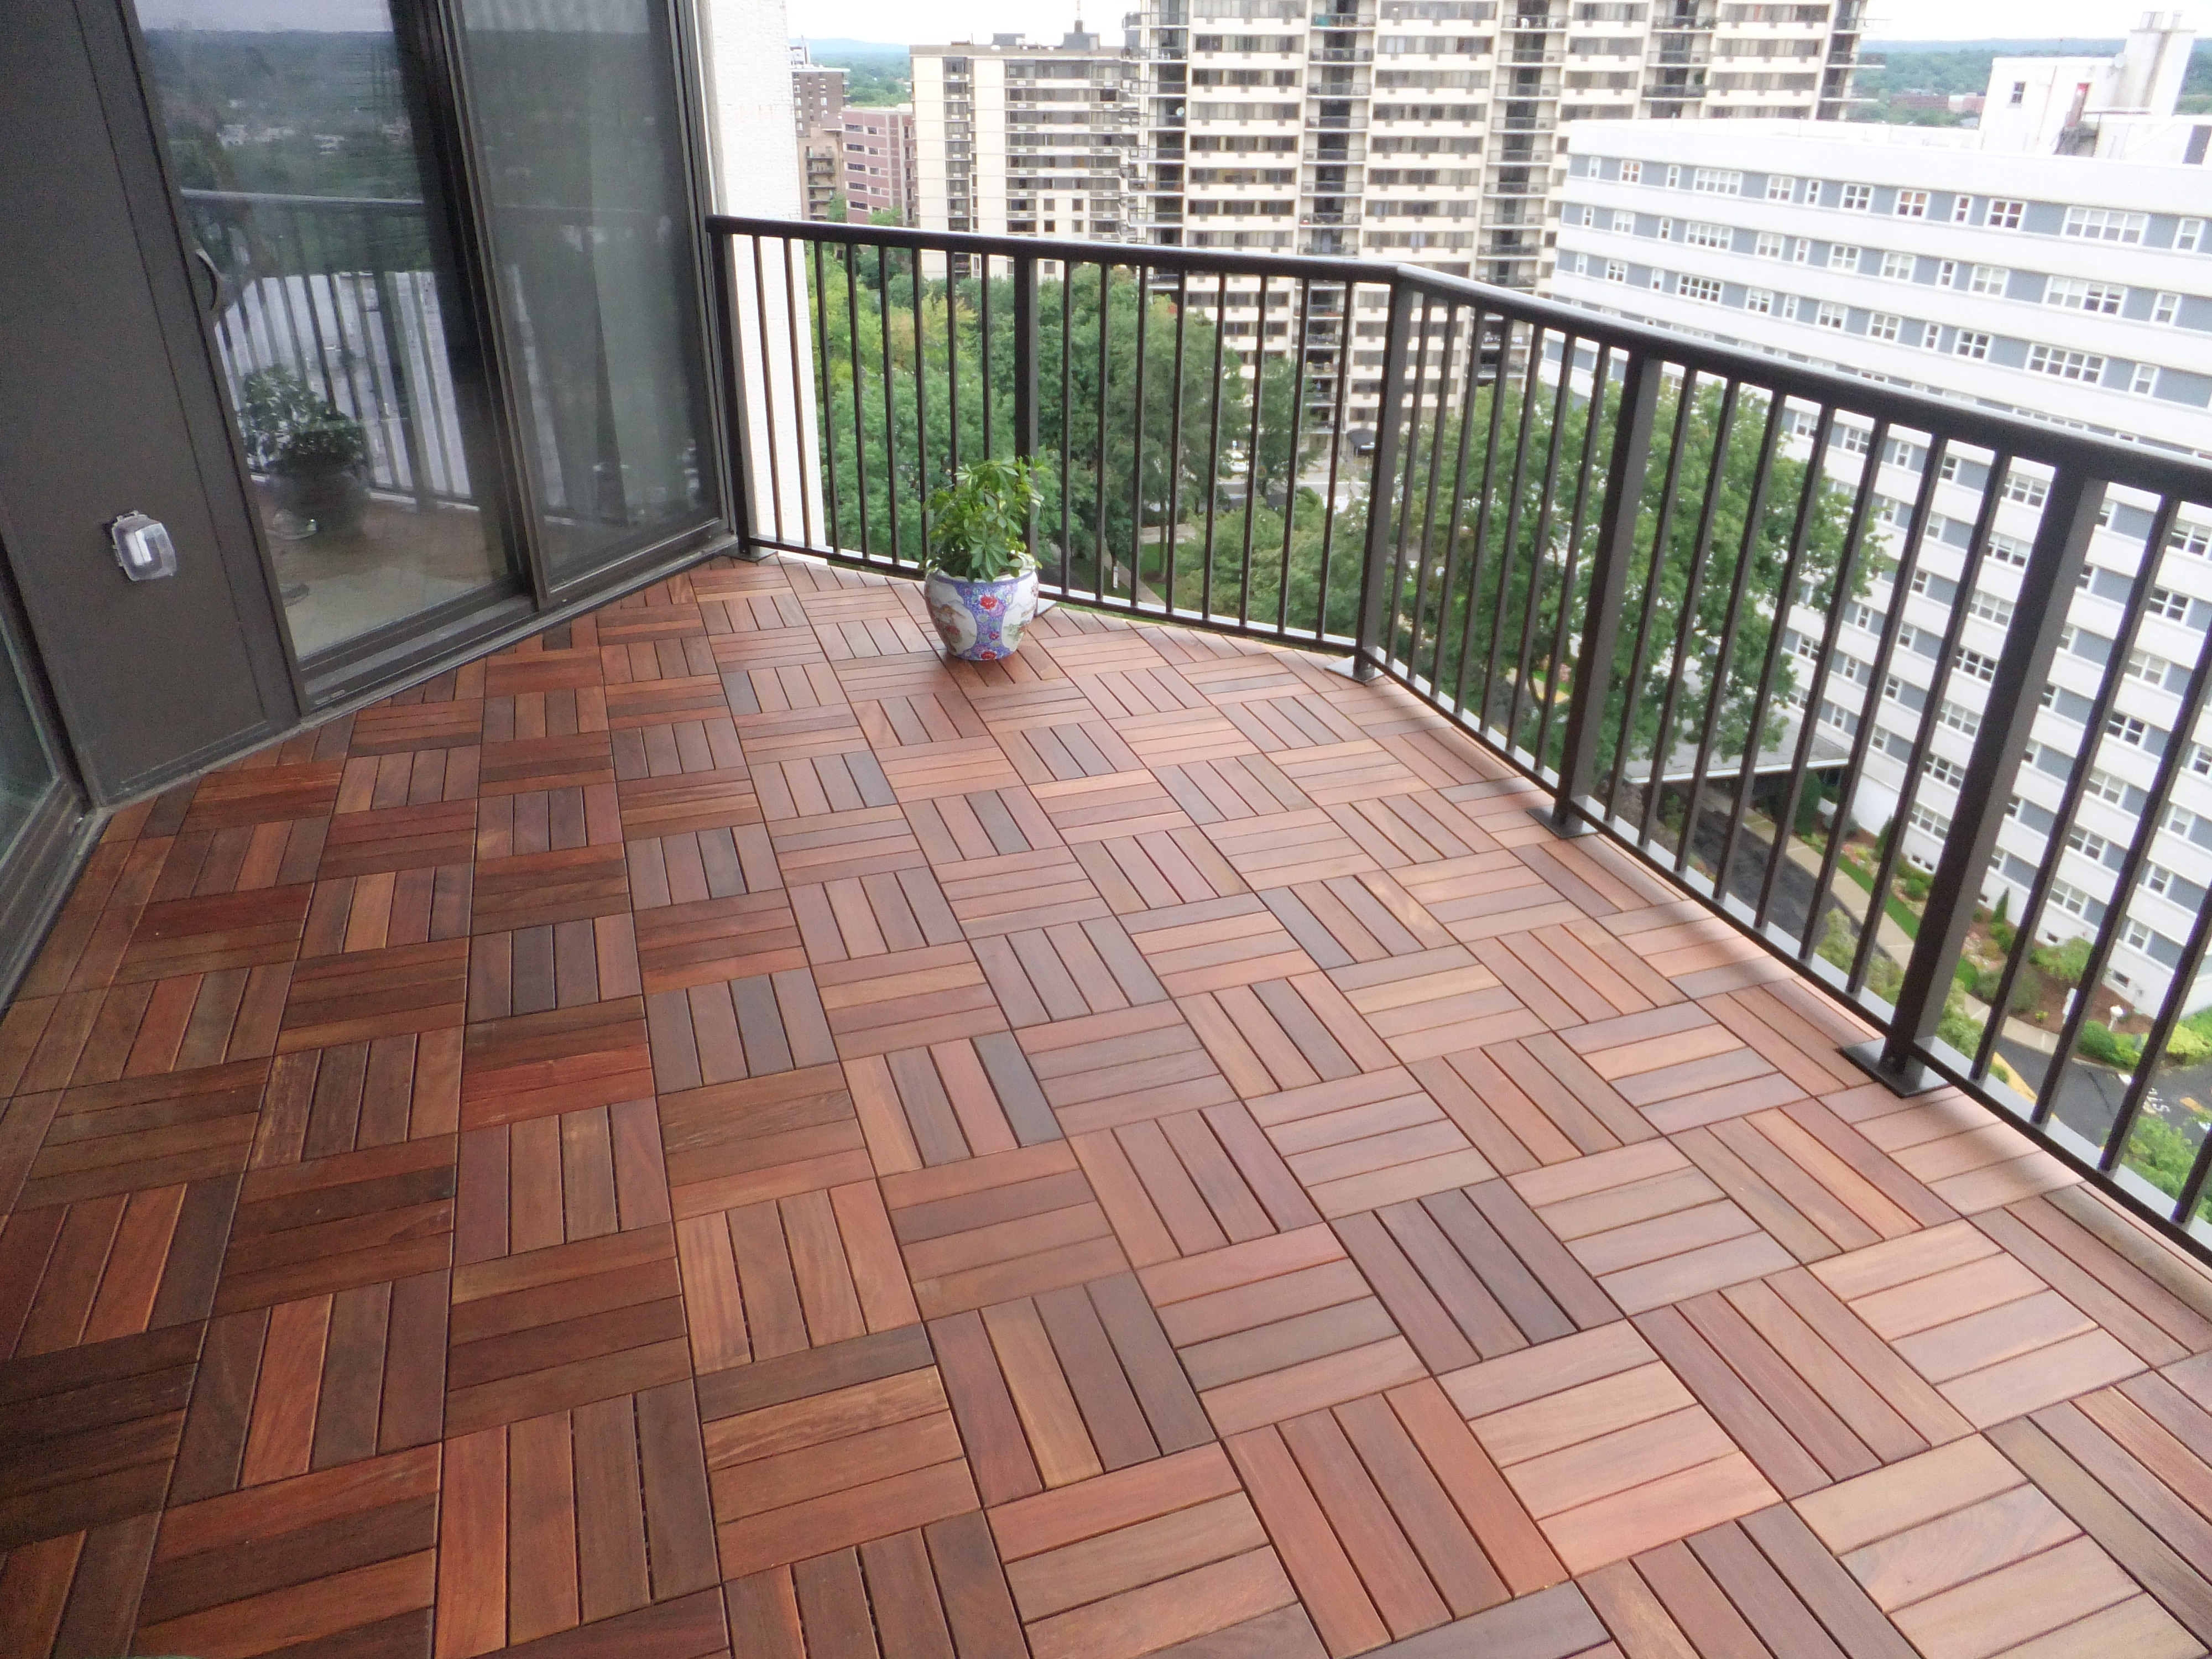 Interlocking Deck Tiles Coverdeck Systems Interlocking Deck Tiles